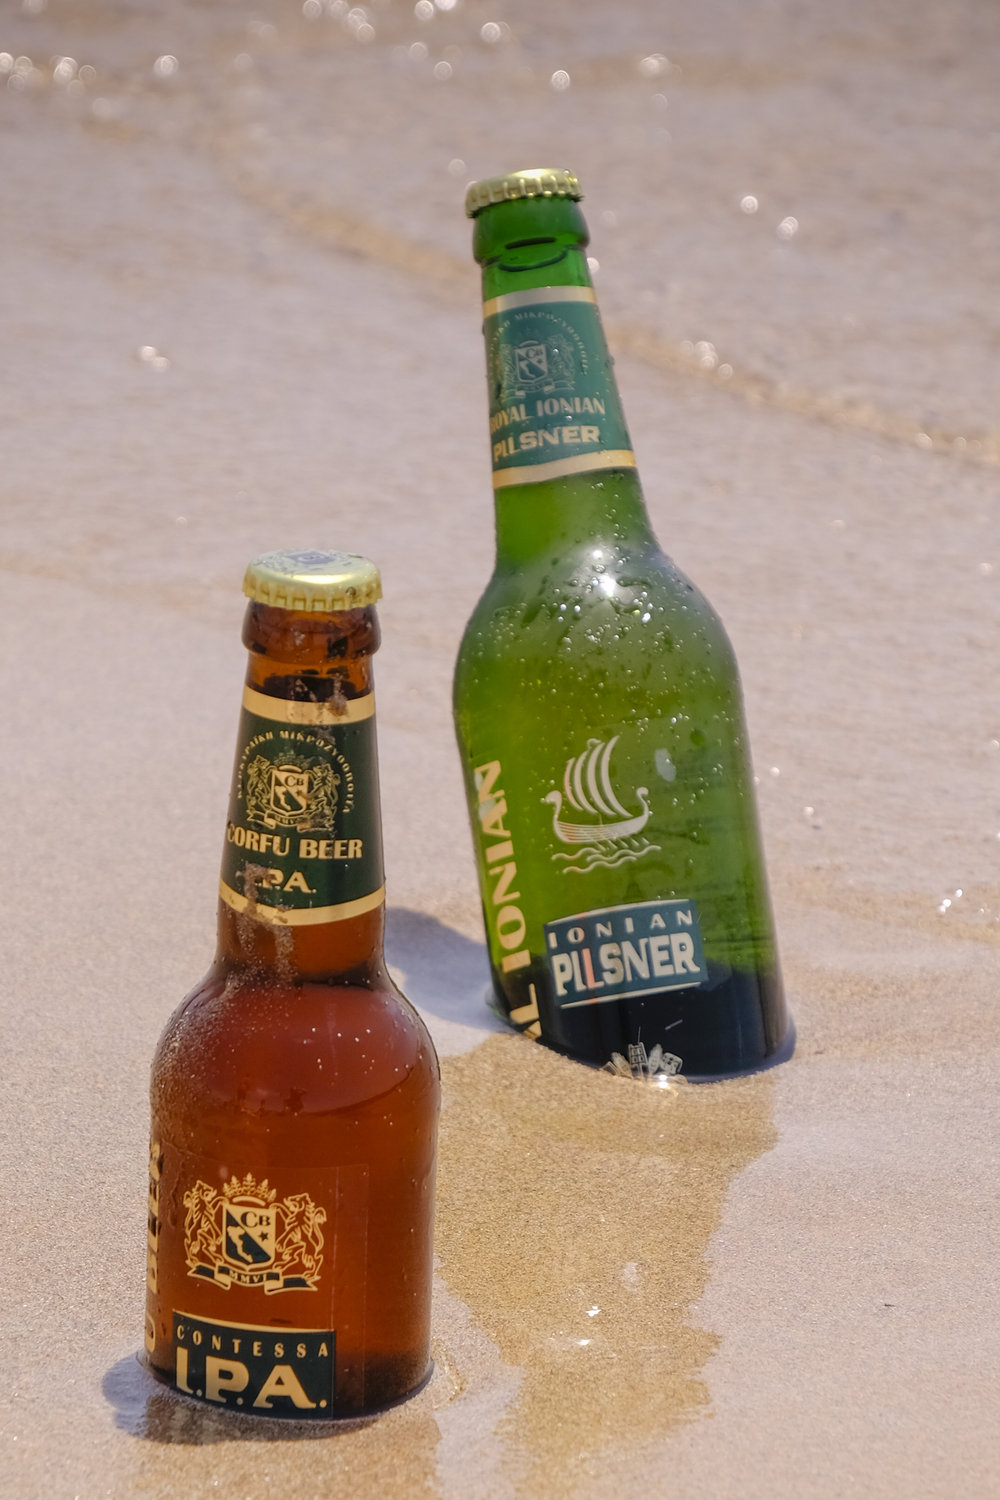 Beer lovers rejoice when they sip the islands top-quality Corfu Beer's range of all-natural, local brews